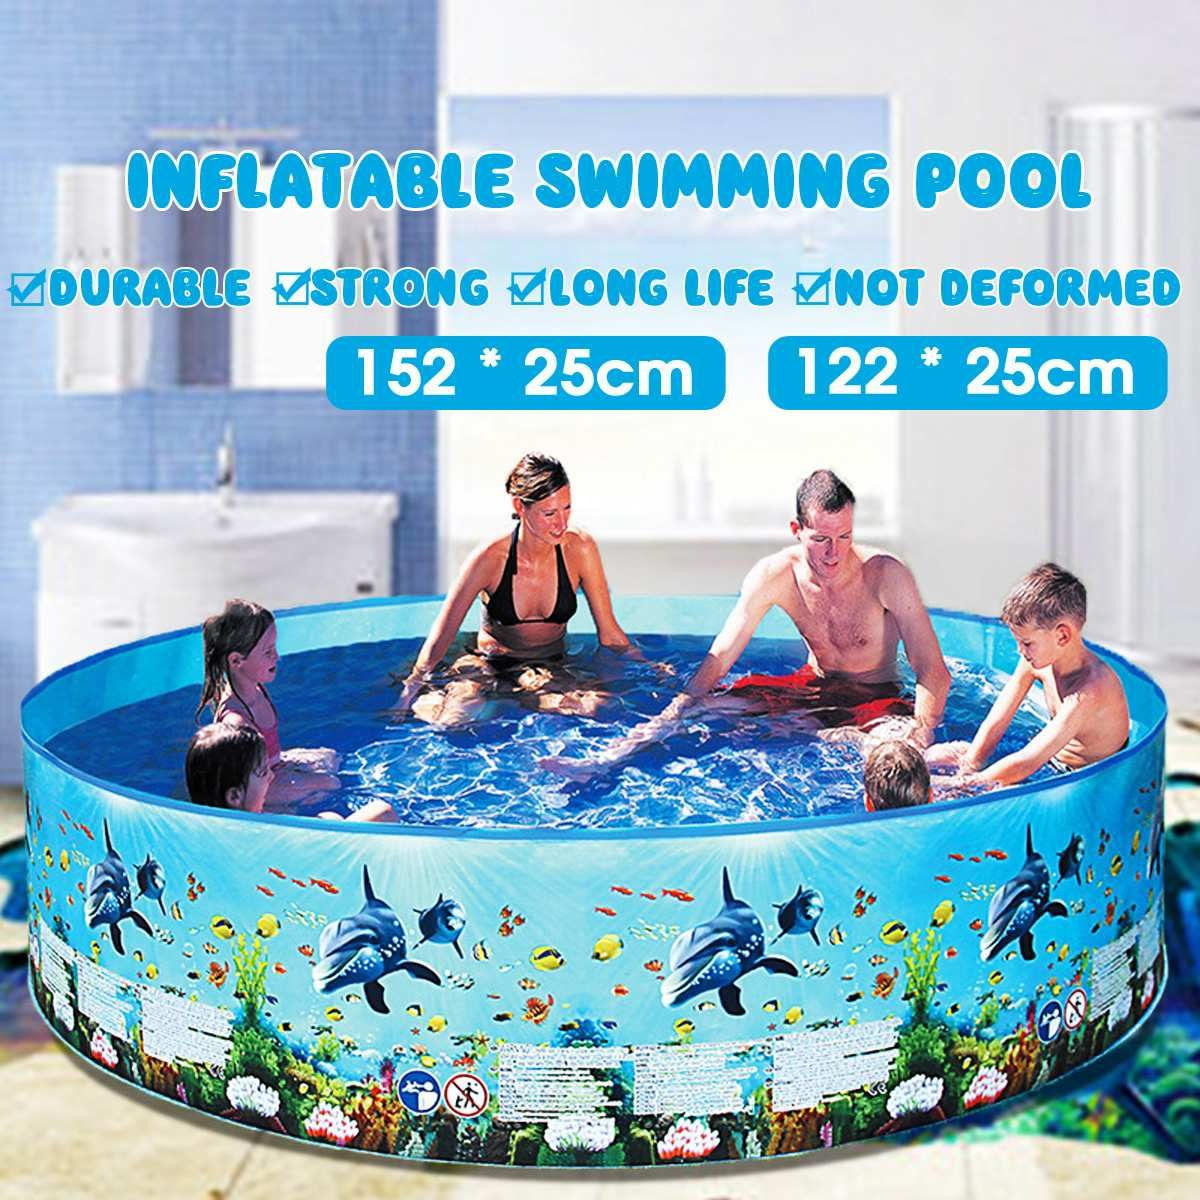 122 152cm Kids Inflatable Pool Round Swimming Pool Inflatable Family Home Use Paddling Pool In 2021 Bath Swimming Pool Children Swimming Pool Inflatable Swimming Pool